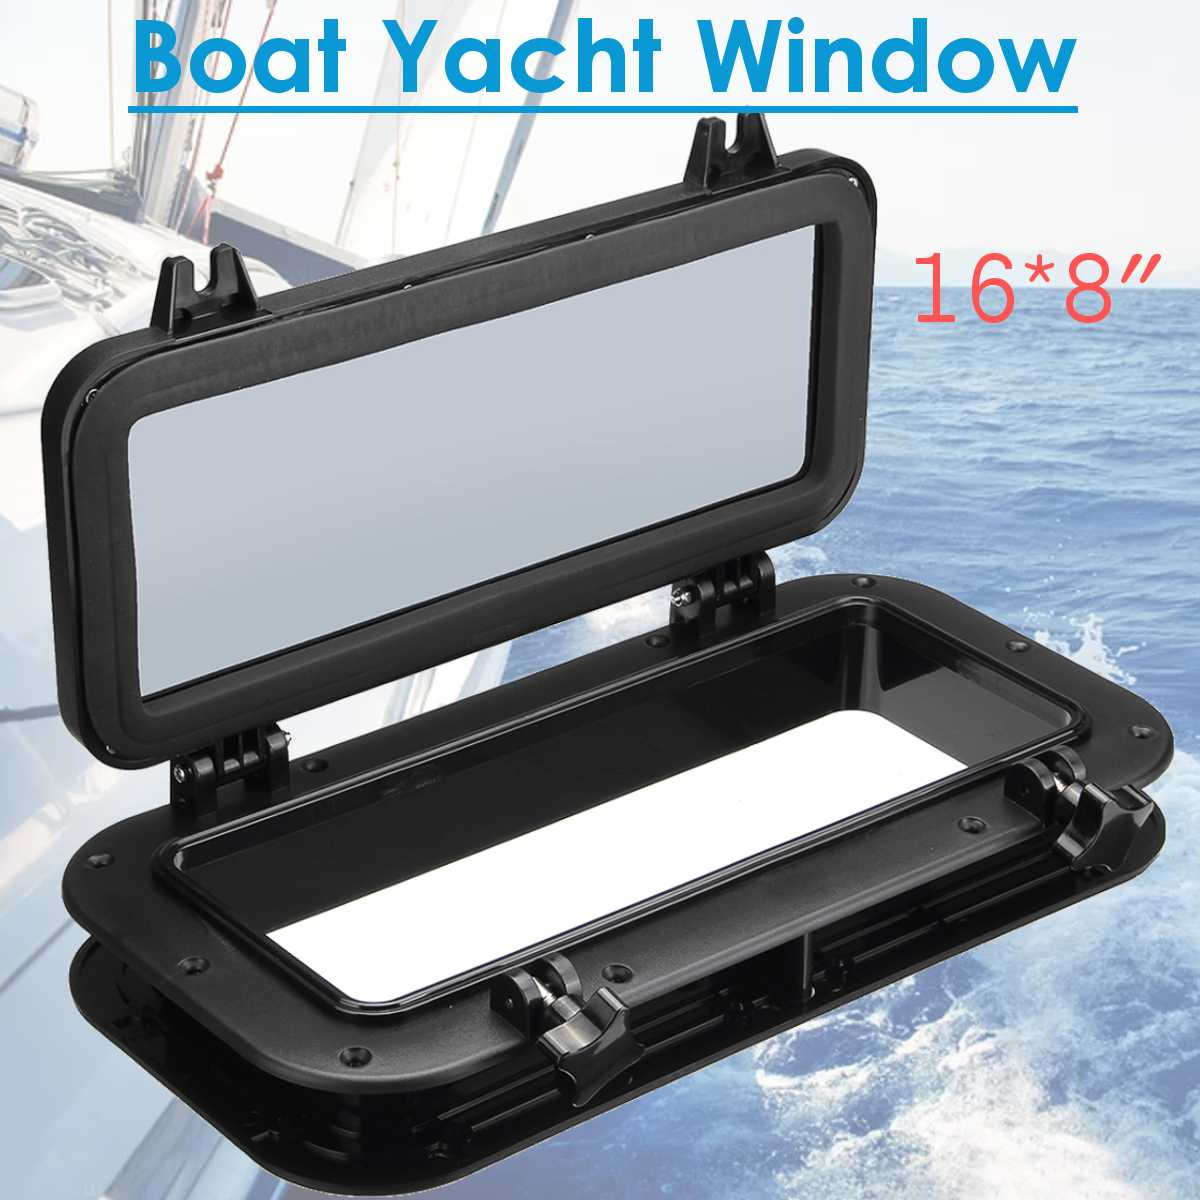 Black Rectangular Boat Ship Yacht Car Replacement Porthole Waterproof Rubber Seal Skylight Cover RV Window Parts